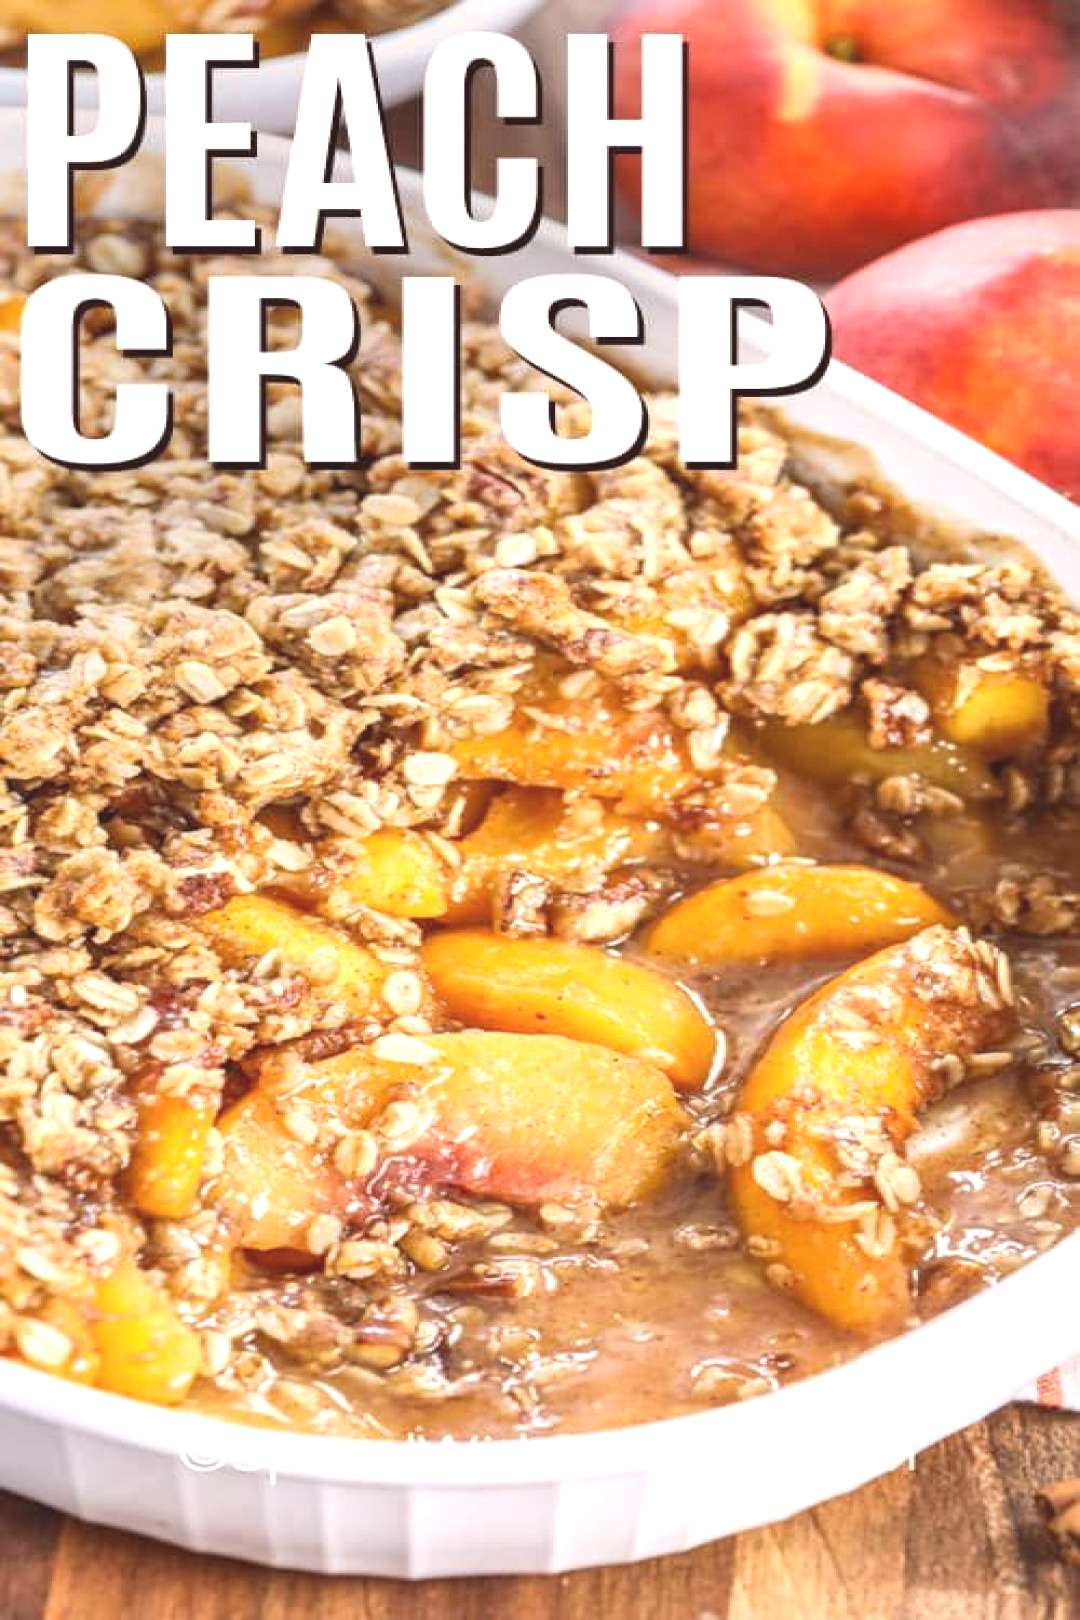 This easy homemade peach crisp recipe is always a hit with my family and friends. Made with fresh j